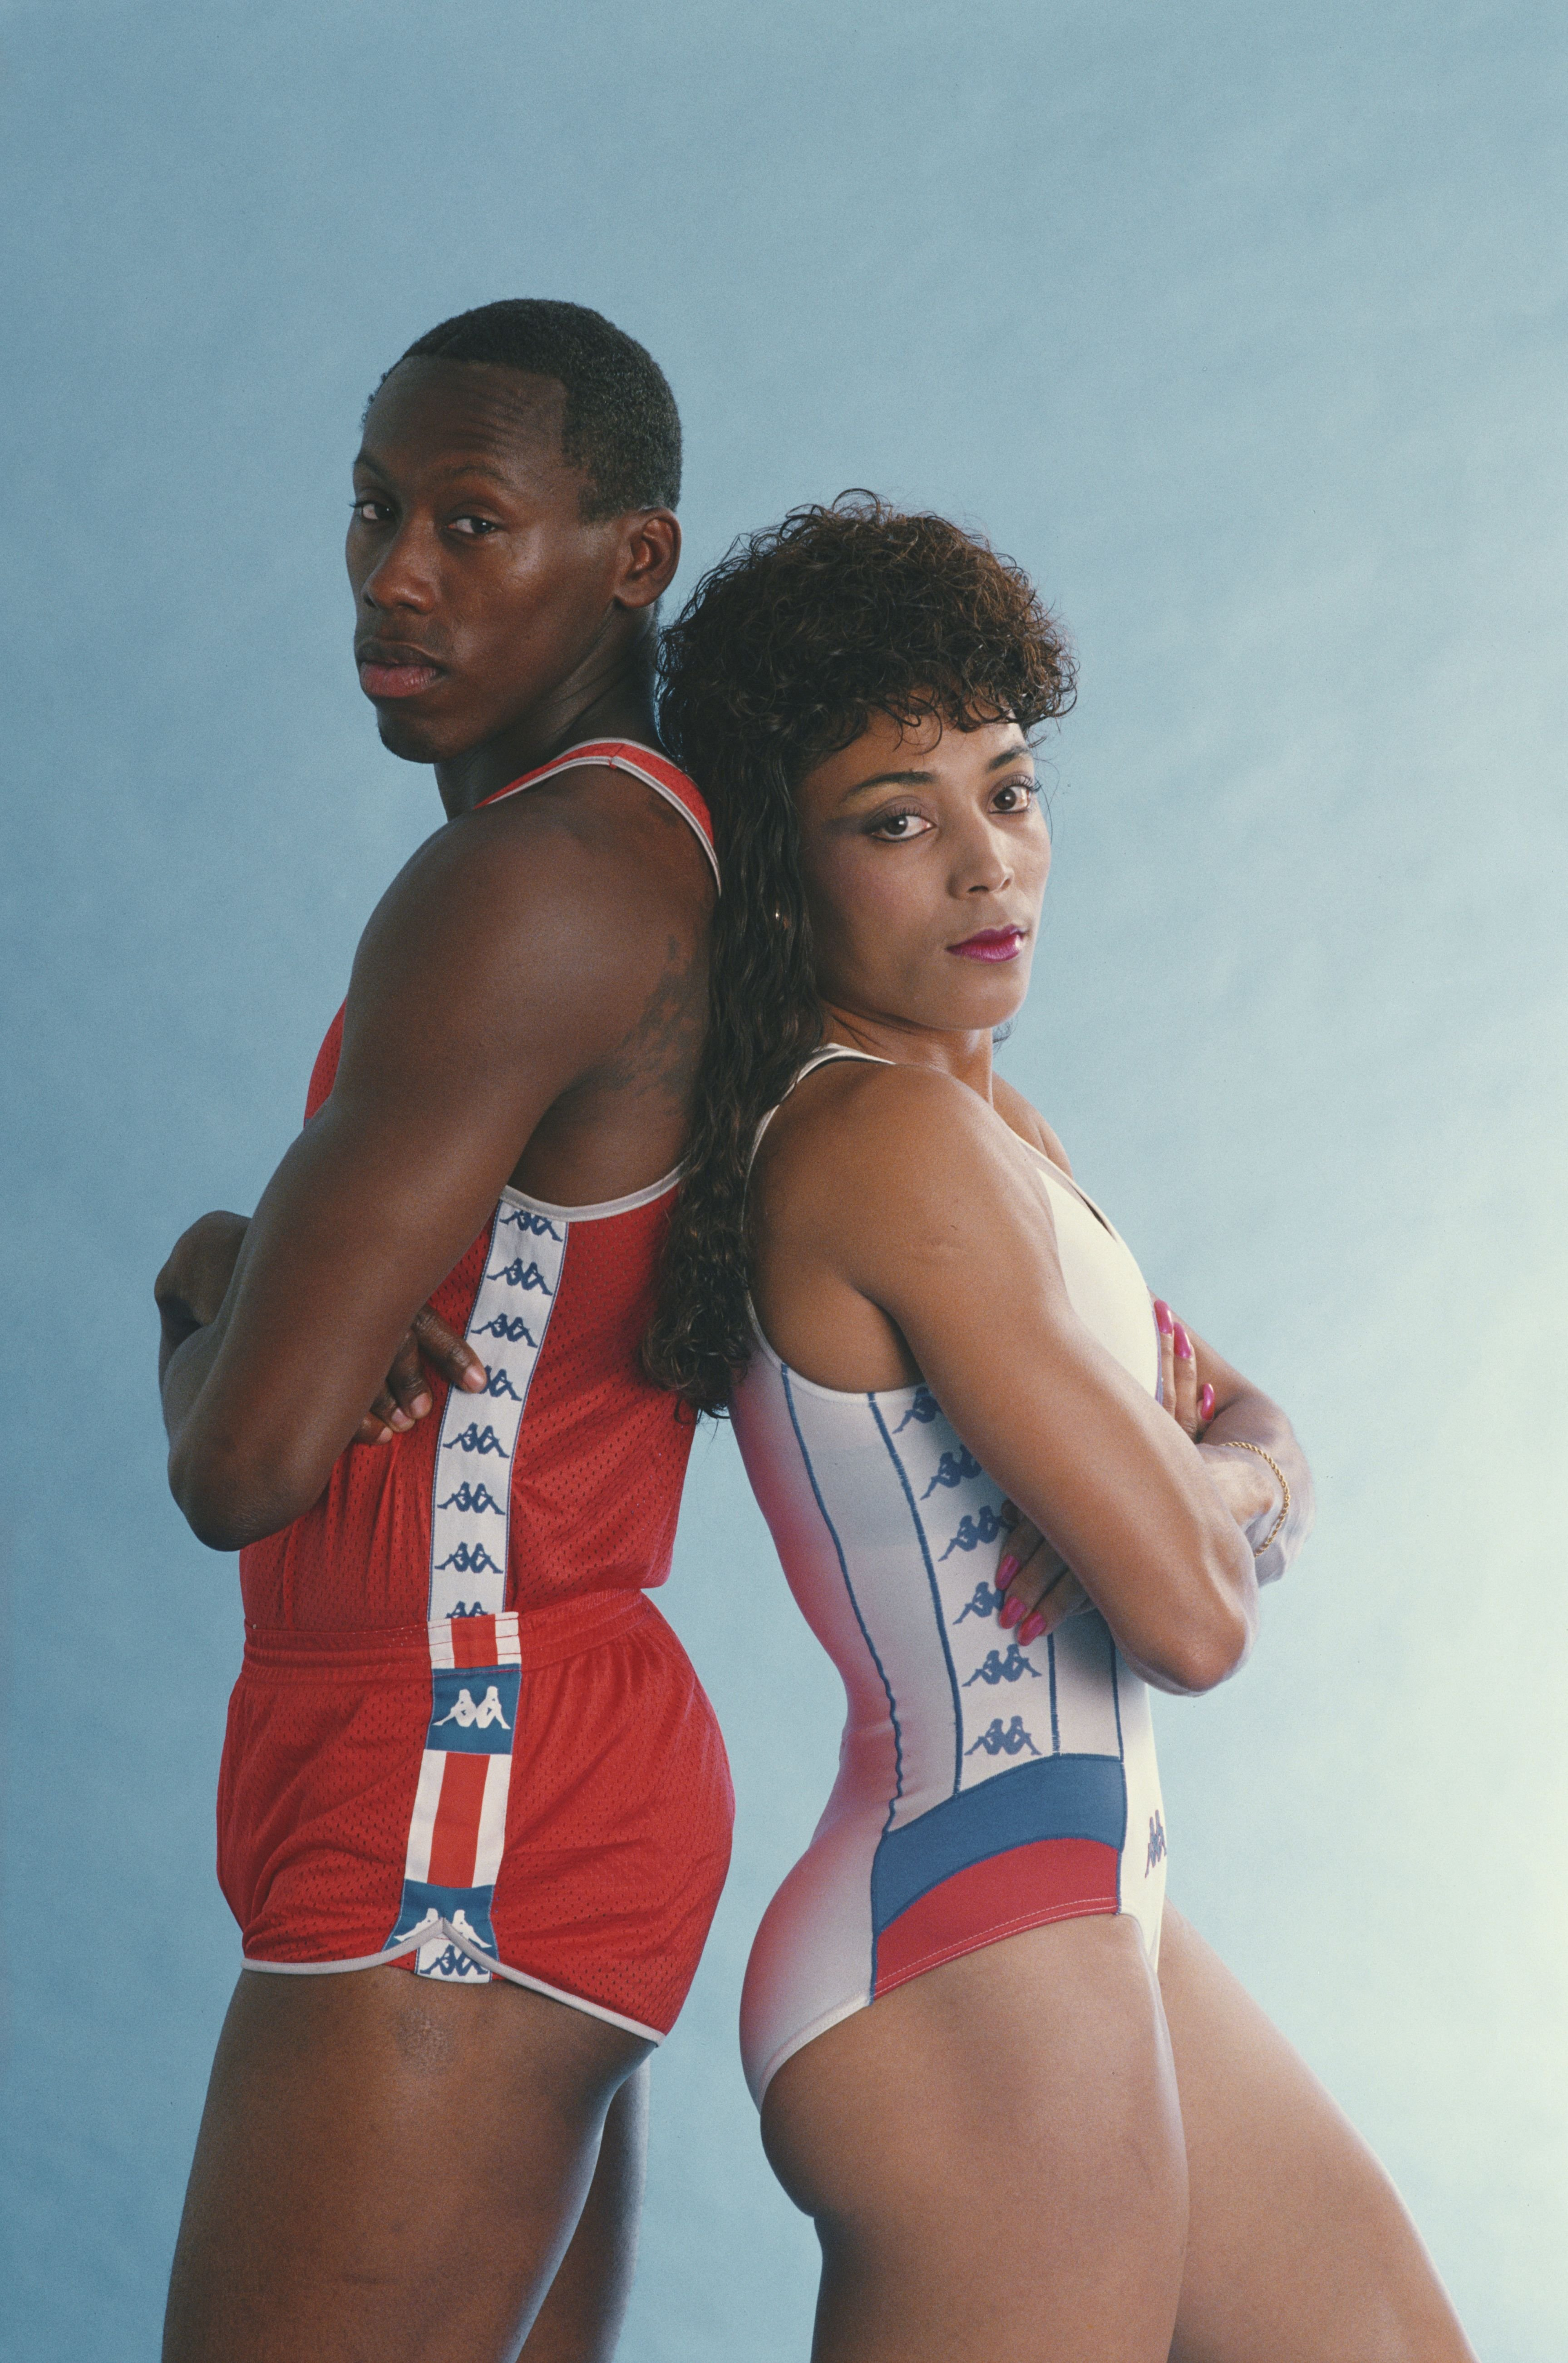 Florence Joyner poses for a portrait with Al Joyner in Los Angeles on April 5, 1988.   Photo: Getty Images